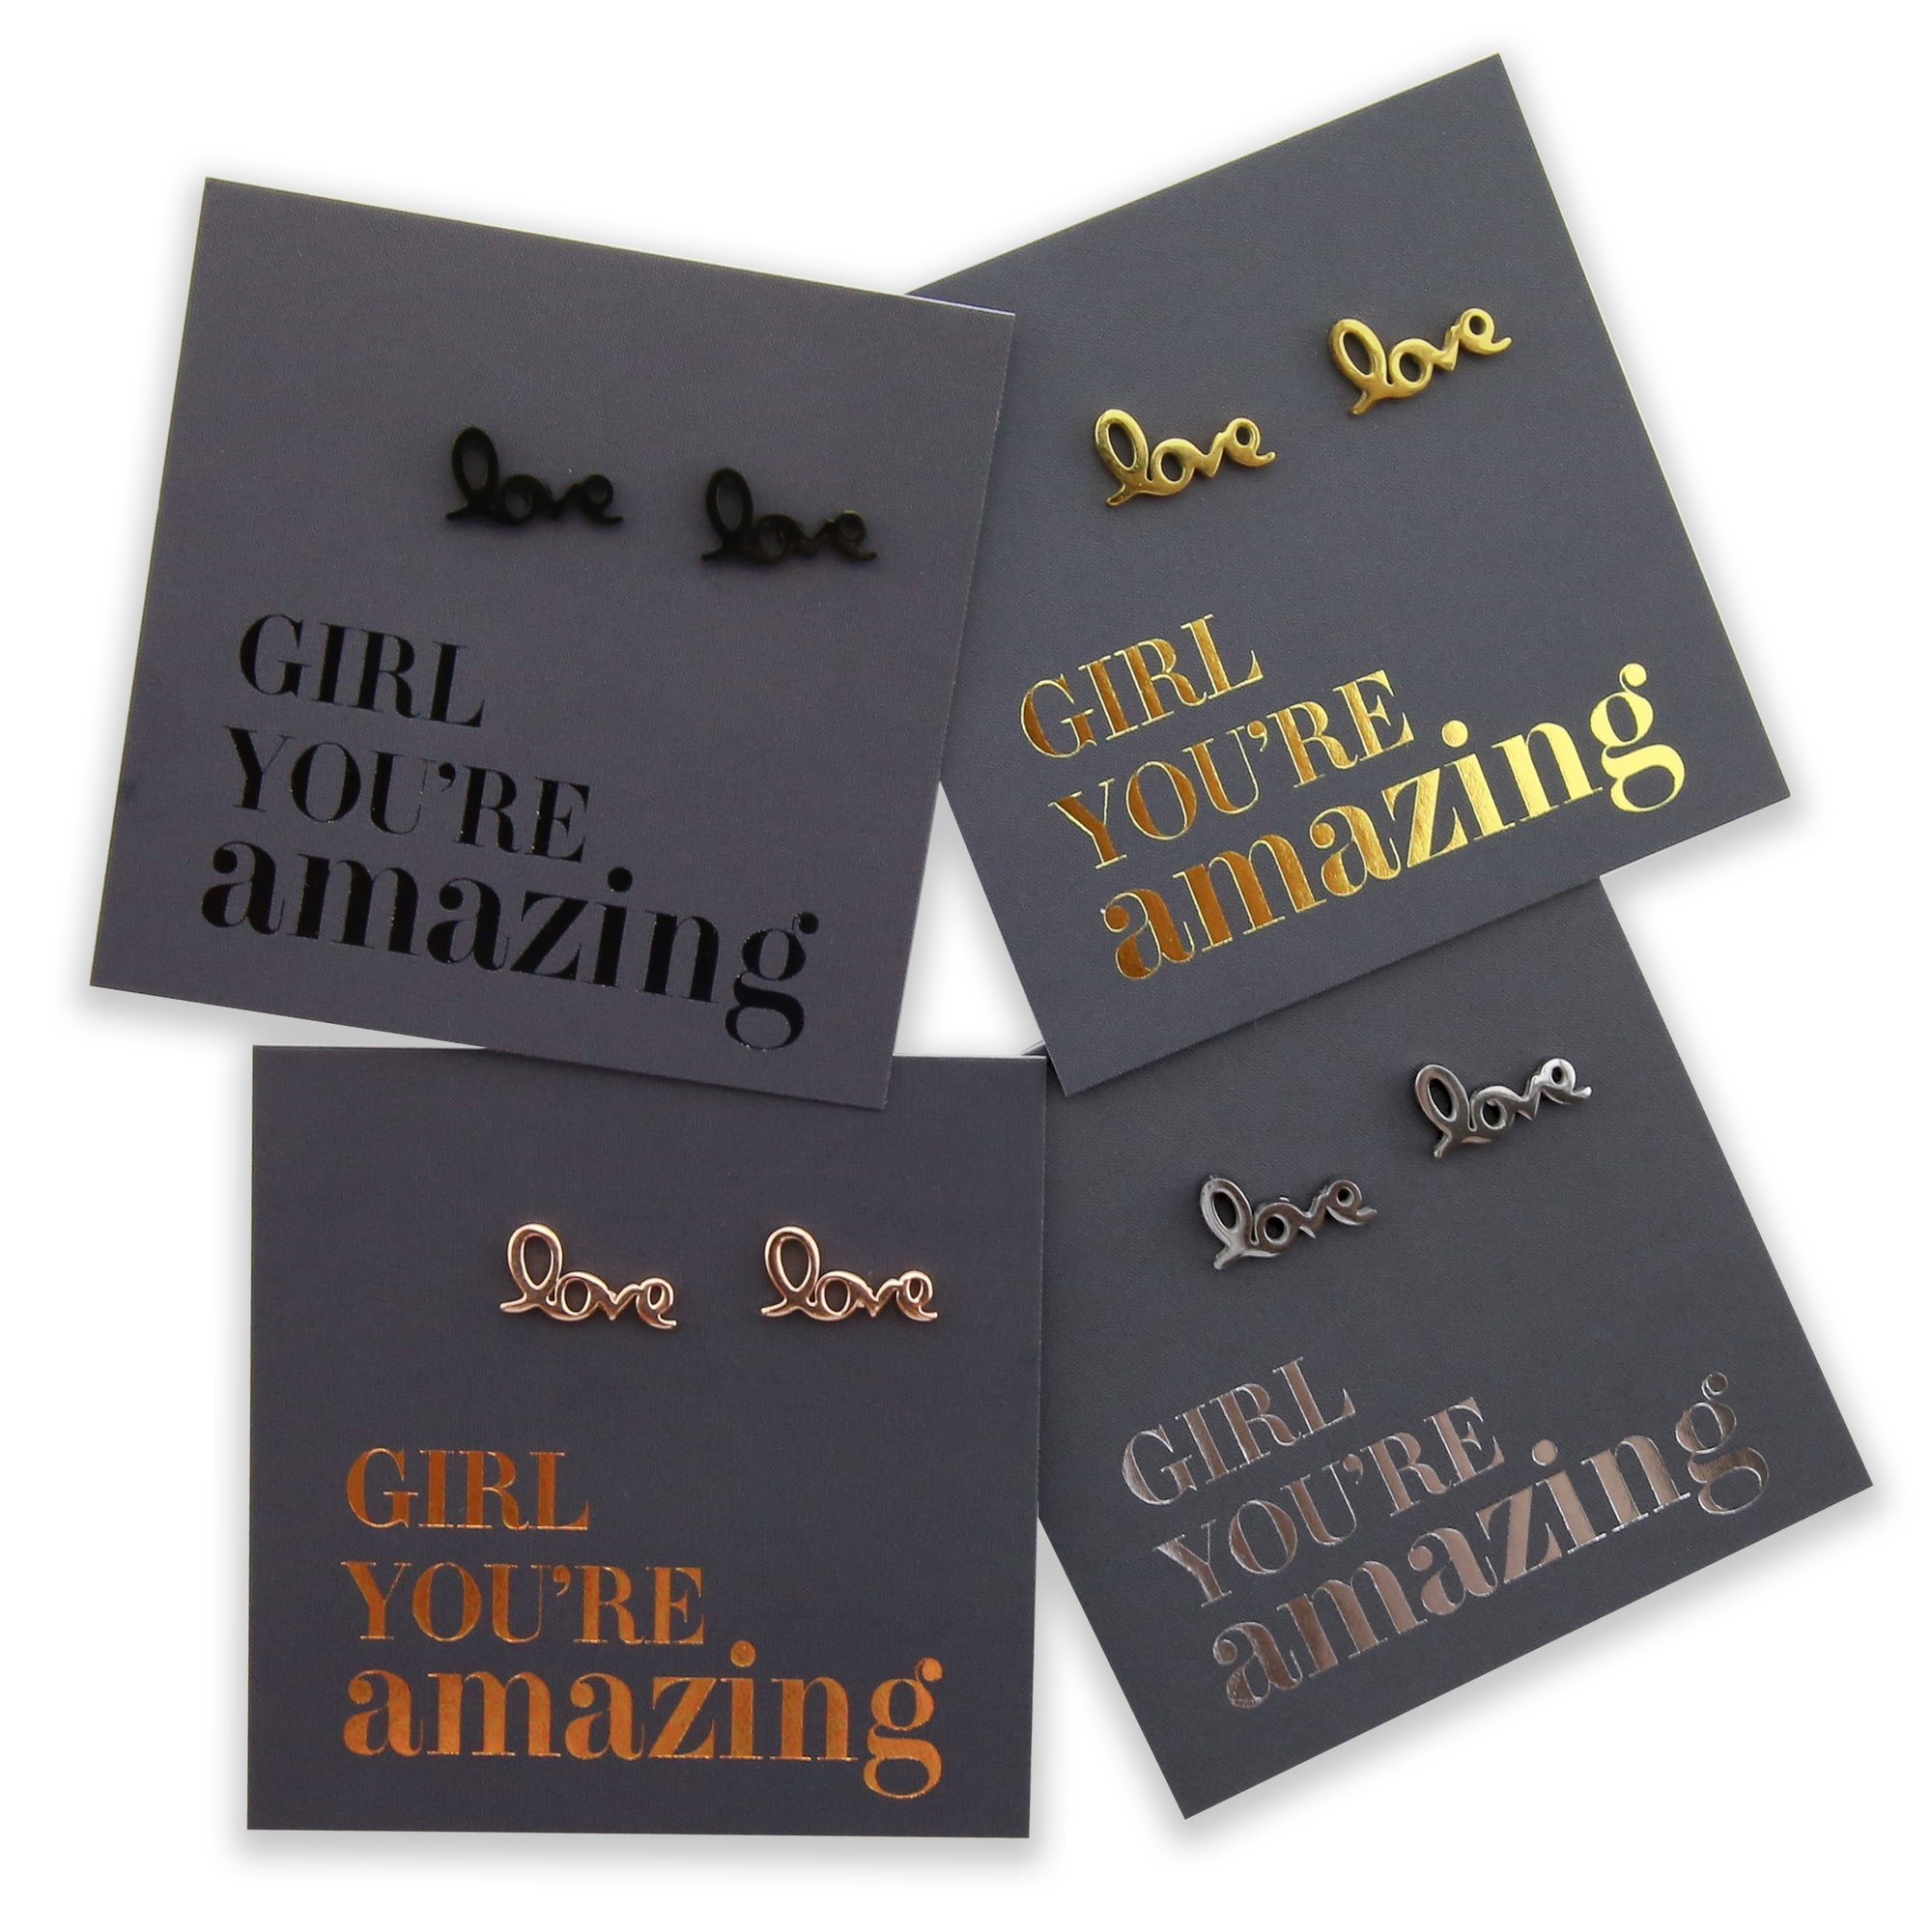 Stainless Steel Earring Studs - Girl You're Amazing - LOVE